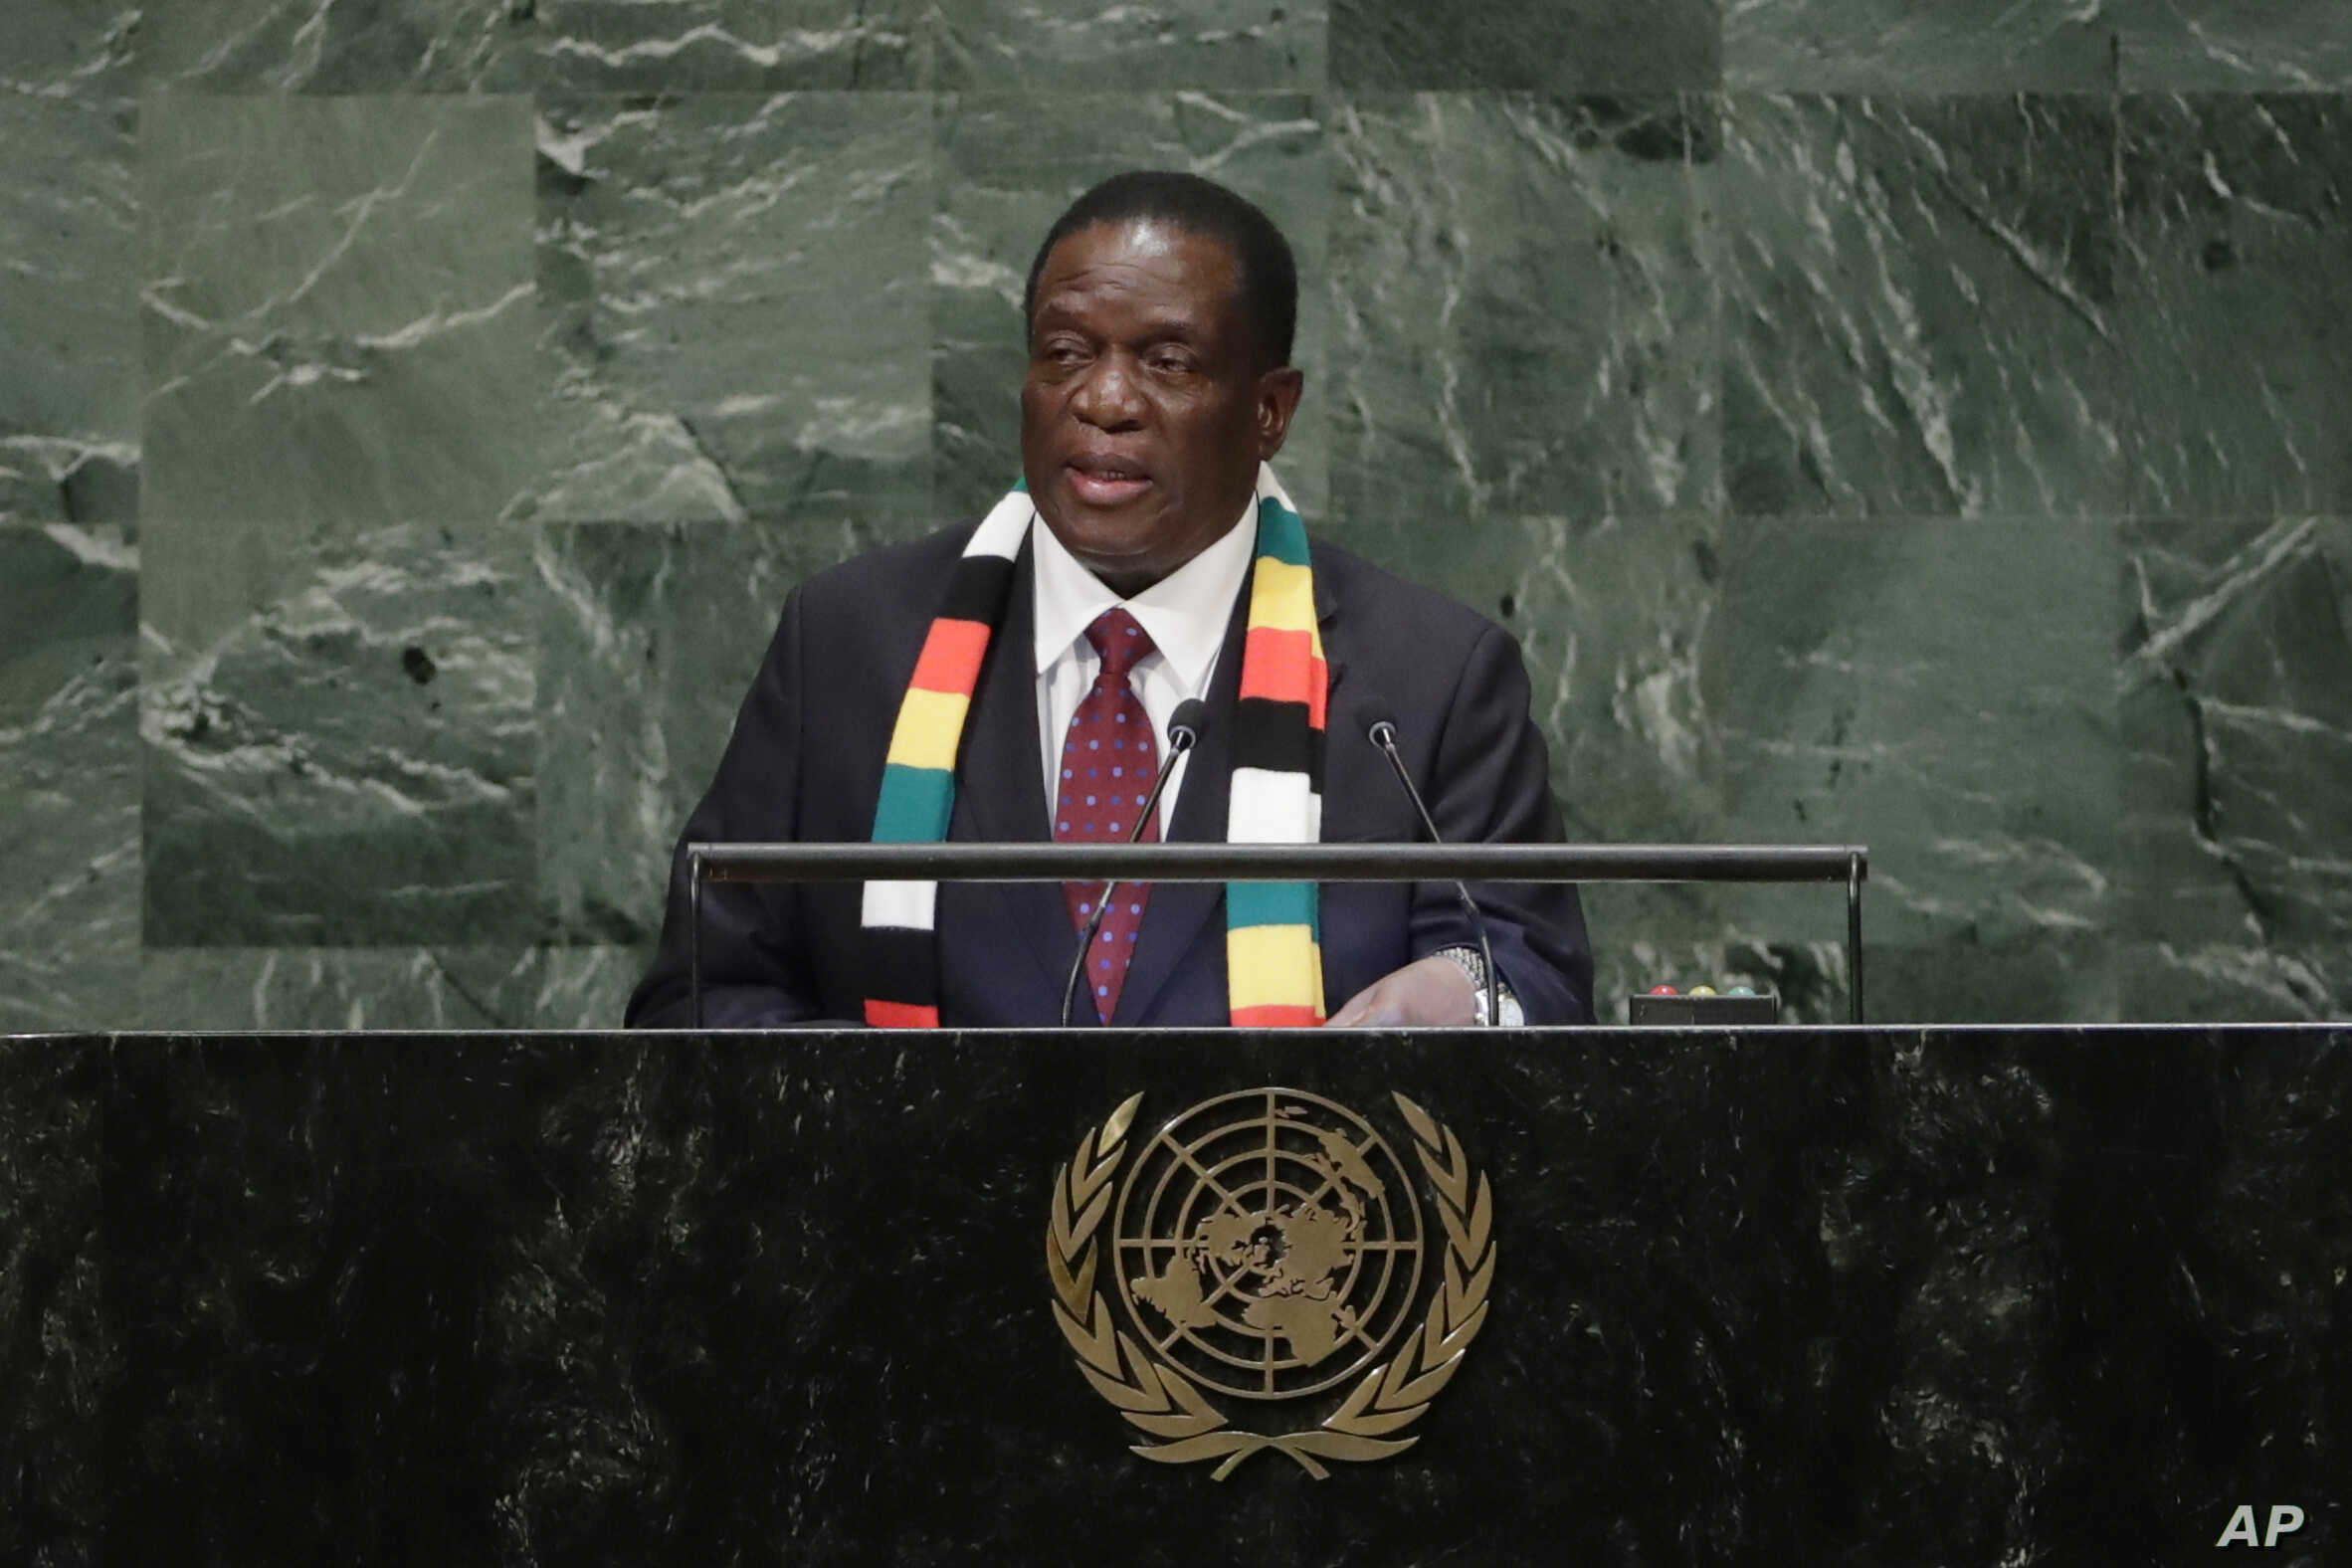 FILE - Zimbabwe's President Emmerson Dambudzo Mnangagwa addresses the 73rd session of the United Nations General Assembly, Sept. 26, 2018, at the United Nations headquarters. (